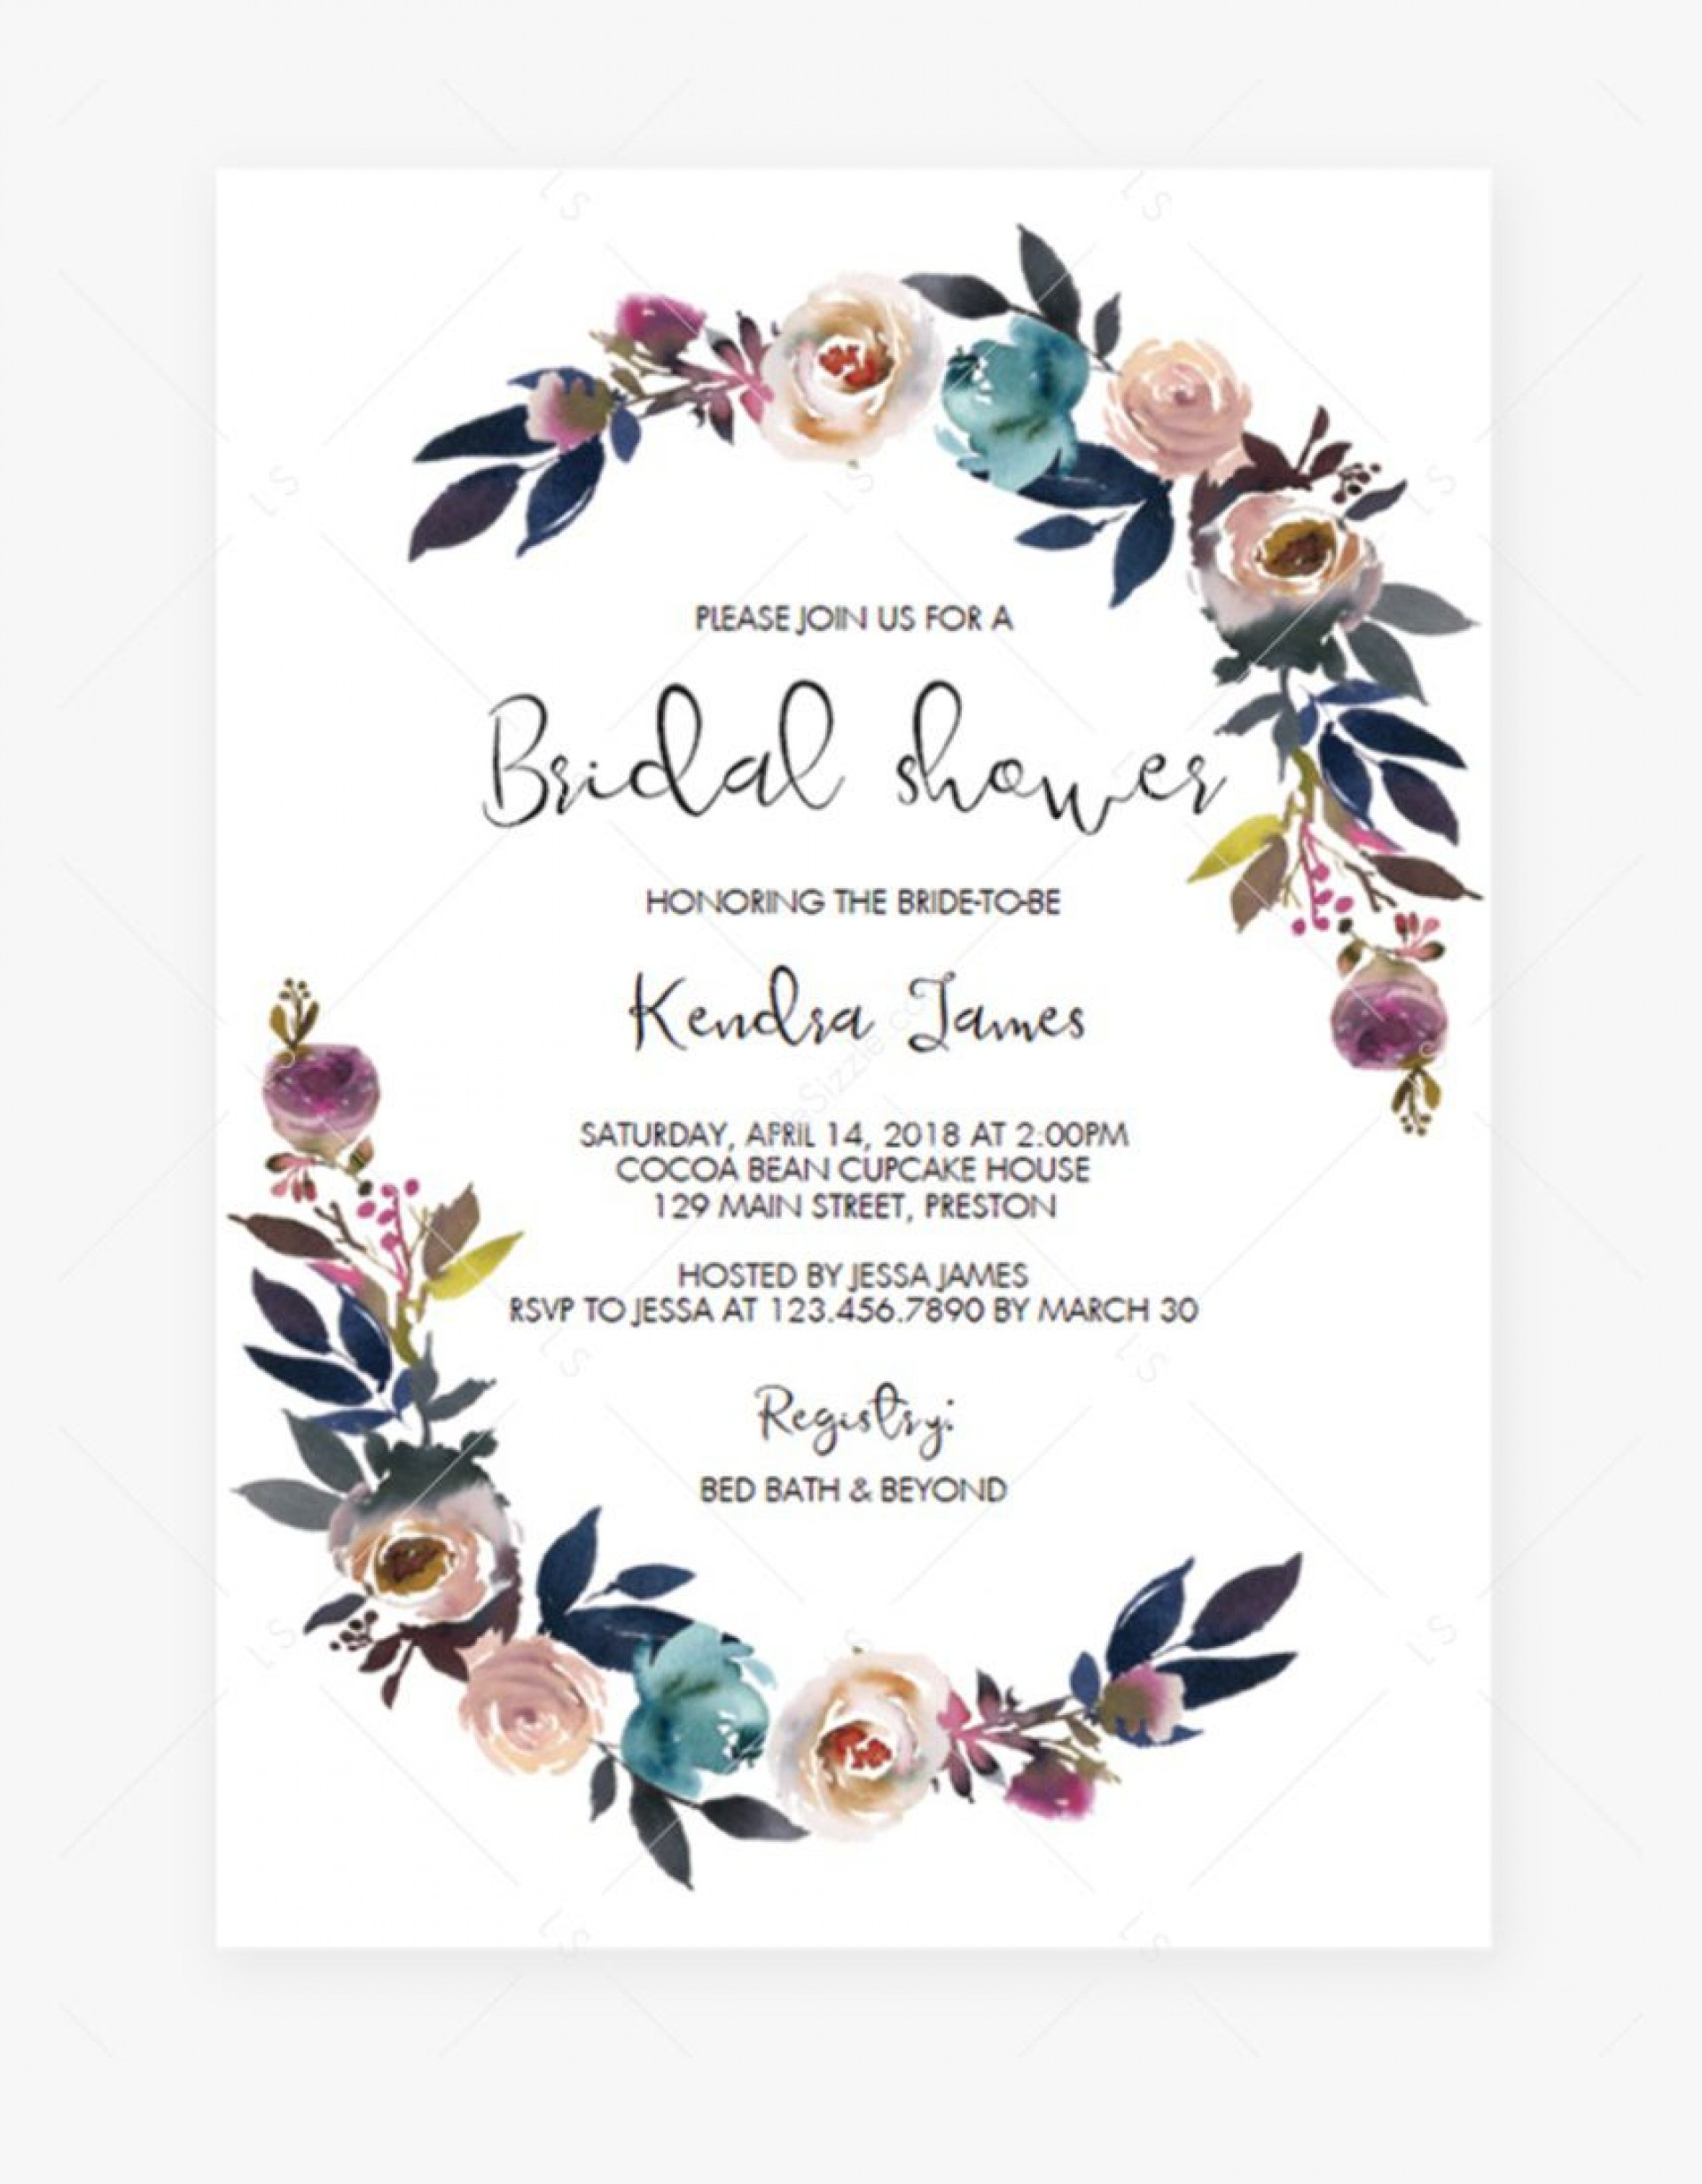 000 Unbelievable Baby Shower Invitation Free Template Image  Templates Online Printable E-invitation Card Design Download1920